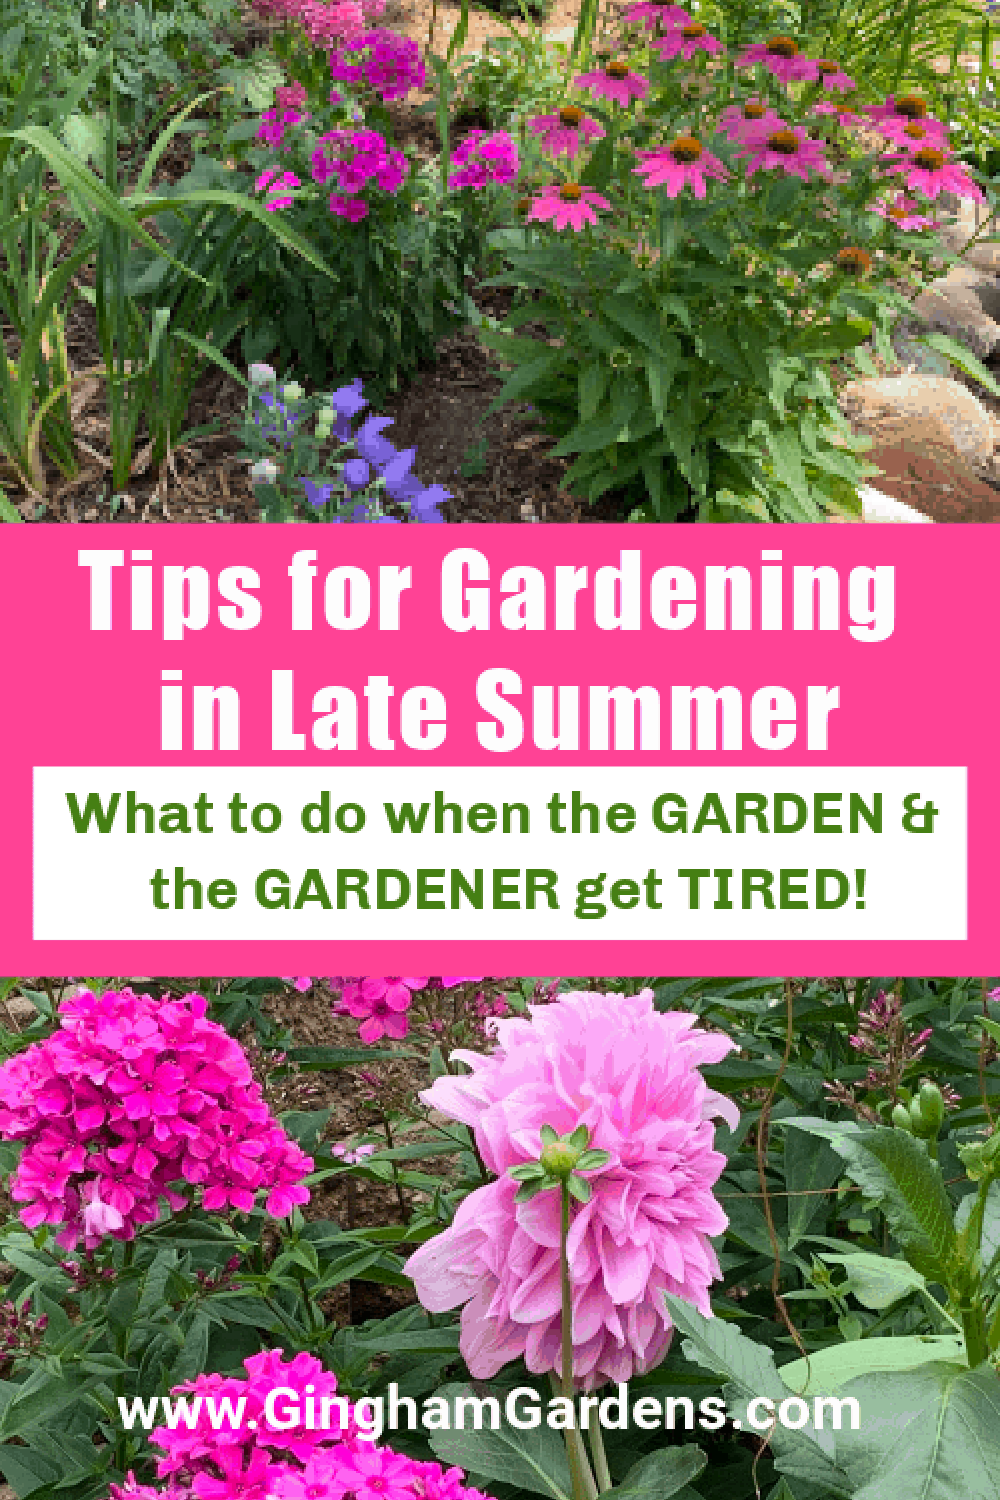 Images of Flower Gardens with Text Overlay - Tips for Gardening in Late Summer